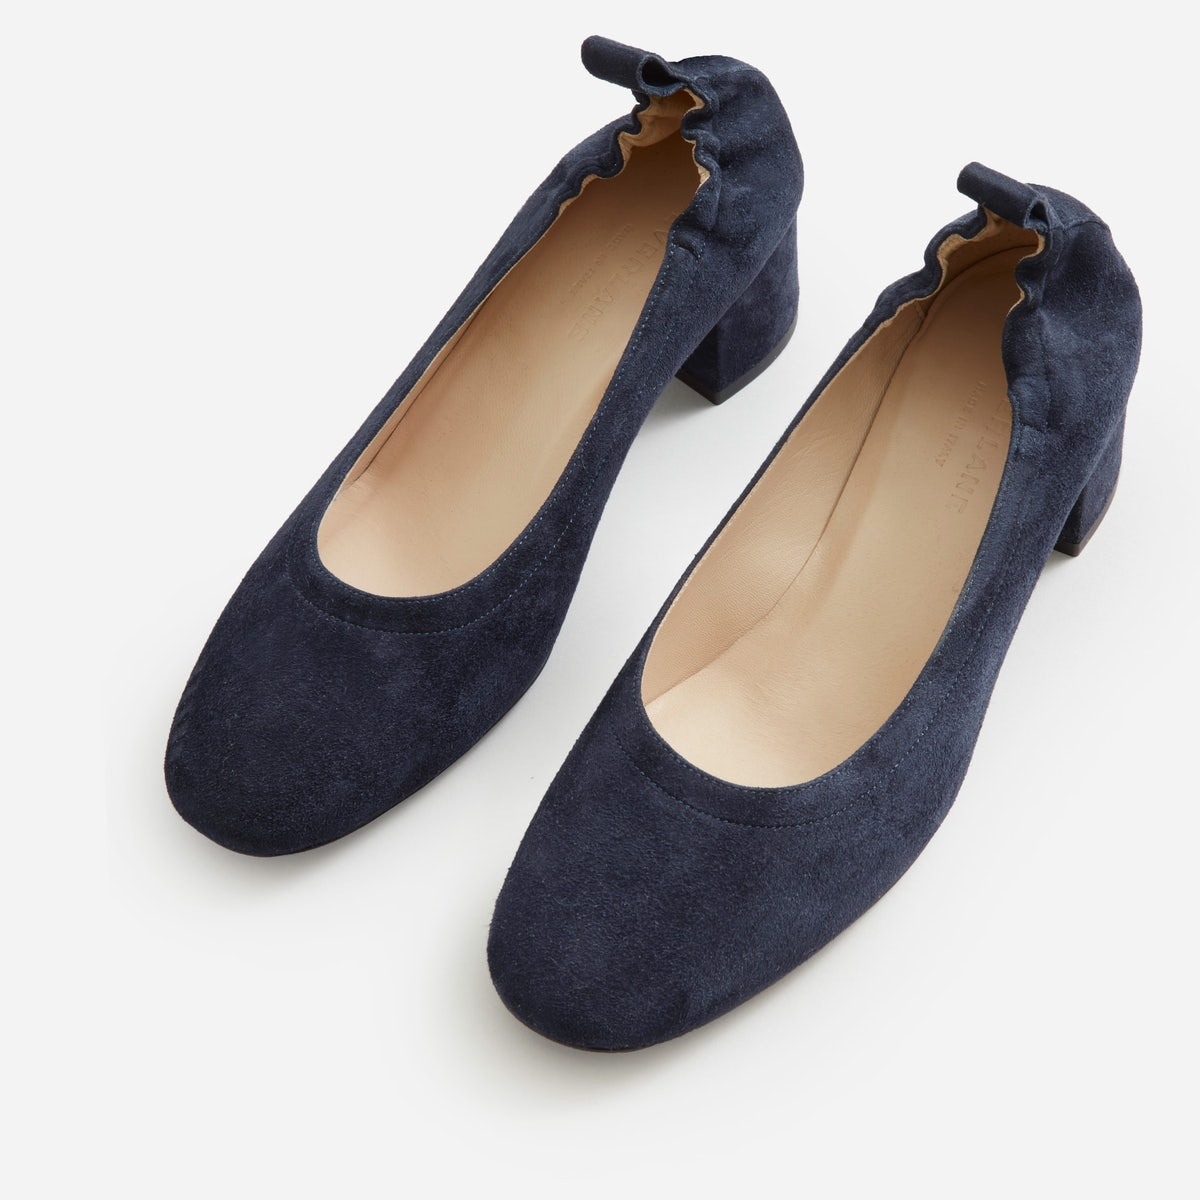 Is the Everlane Day Heel As Comfy As Everyone Says?